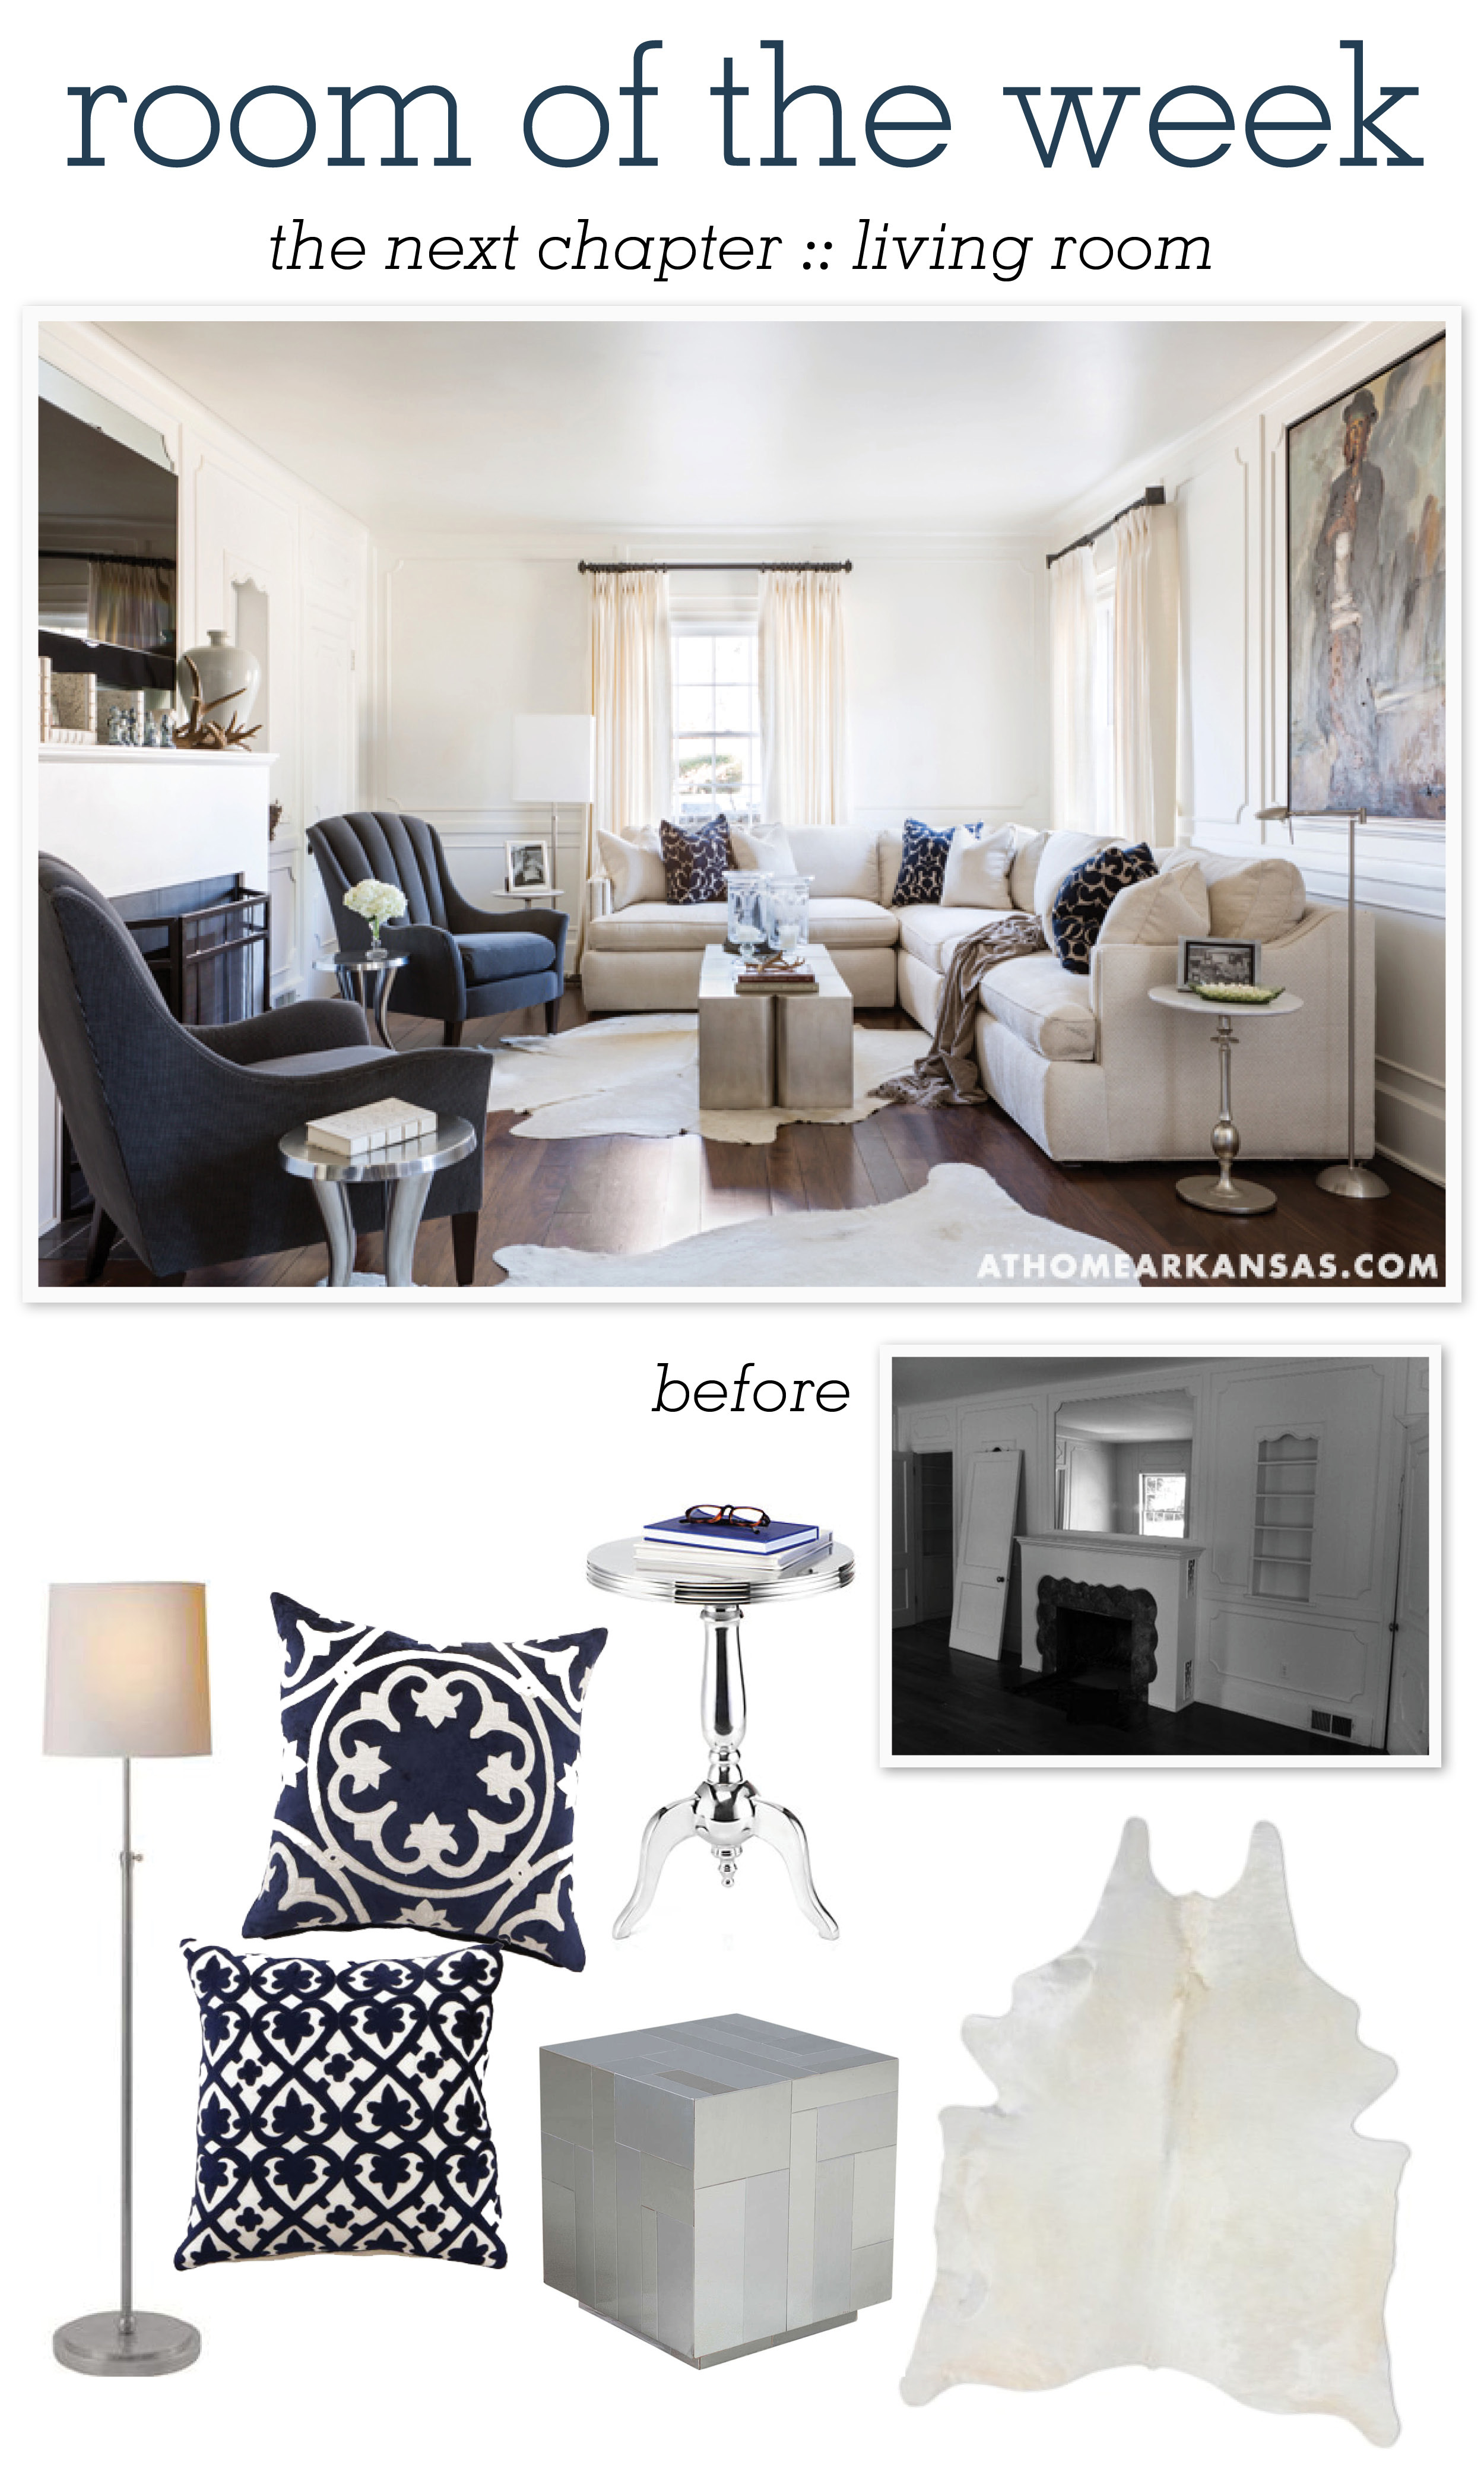 At Home in Arkansas blog | 29 May 2014 | Room of the Week: The Next Chapter, Living Room